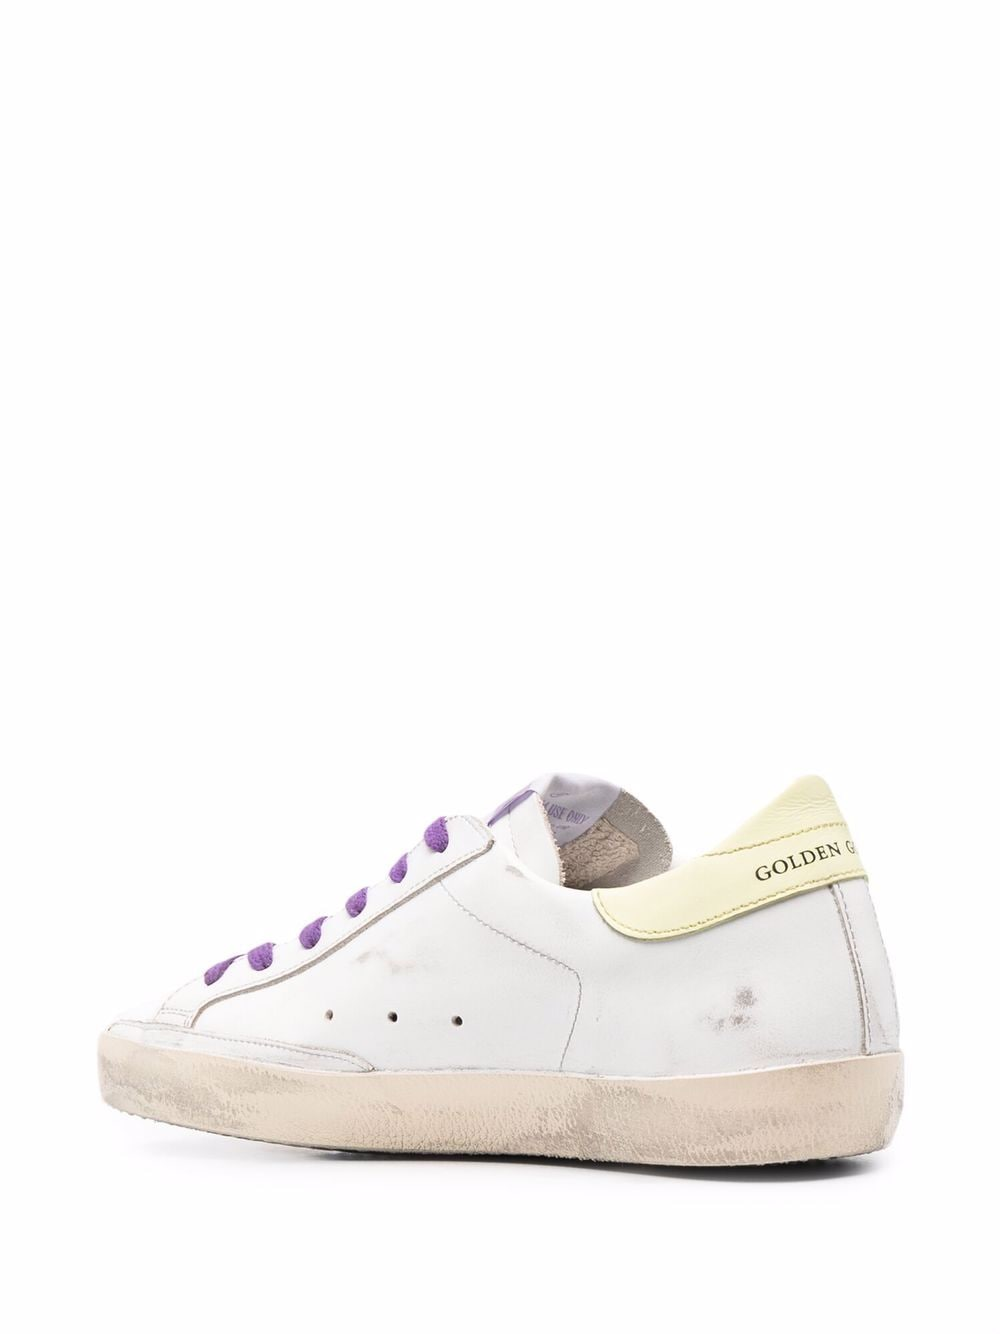 Picture of Golden Goose Deluxe Brand   Superstar Glitter-Embellished Sneakers